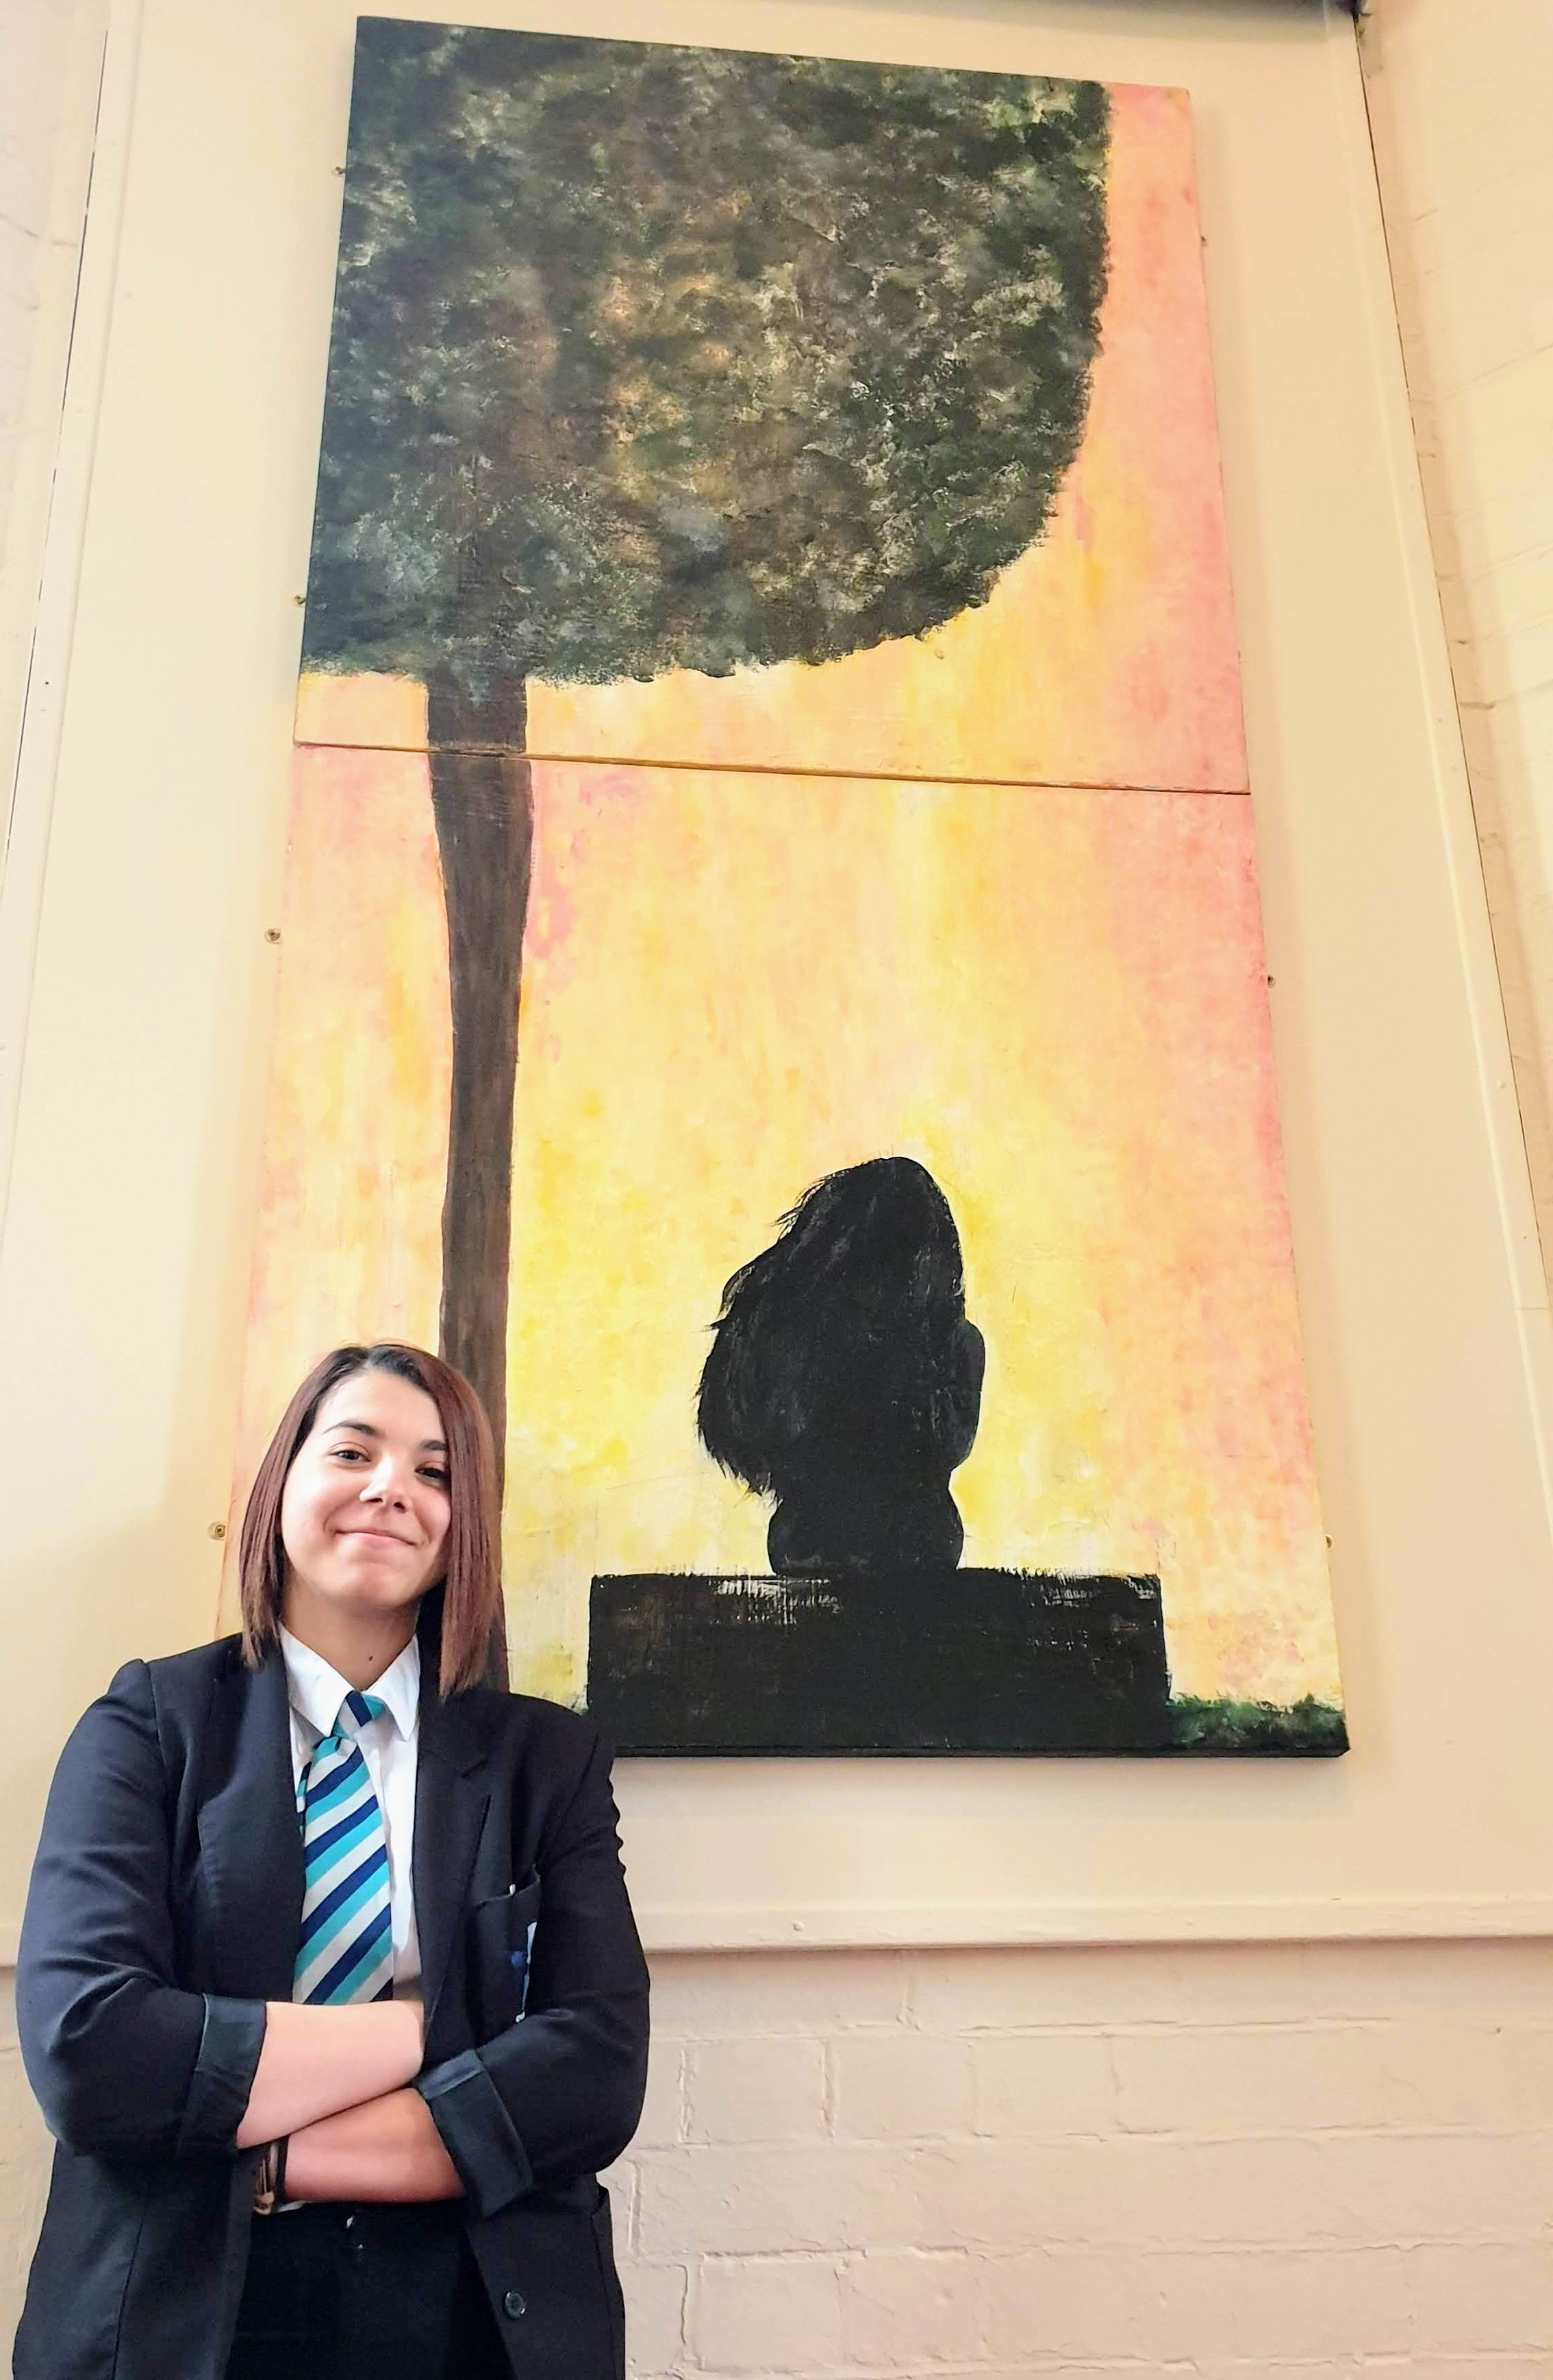 Student Ilona Esanu, 15, who attends Shirebrook Academy, has designed a new painting which has been given pride of place on the wall of Shirebrook's cemetery chapel as part of a restoration project. Penguin PR: public relations, media and communications.